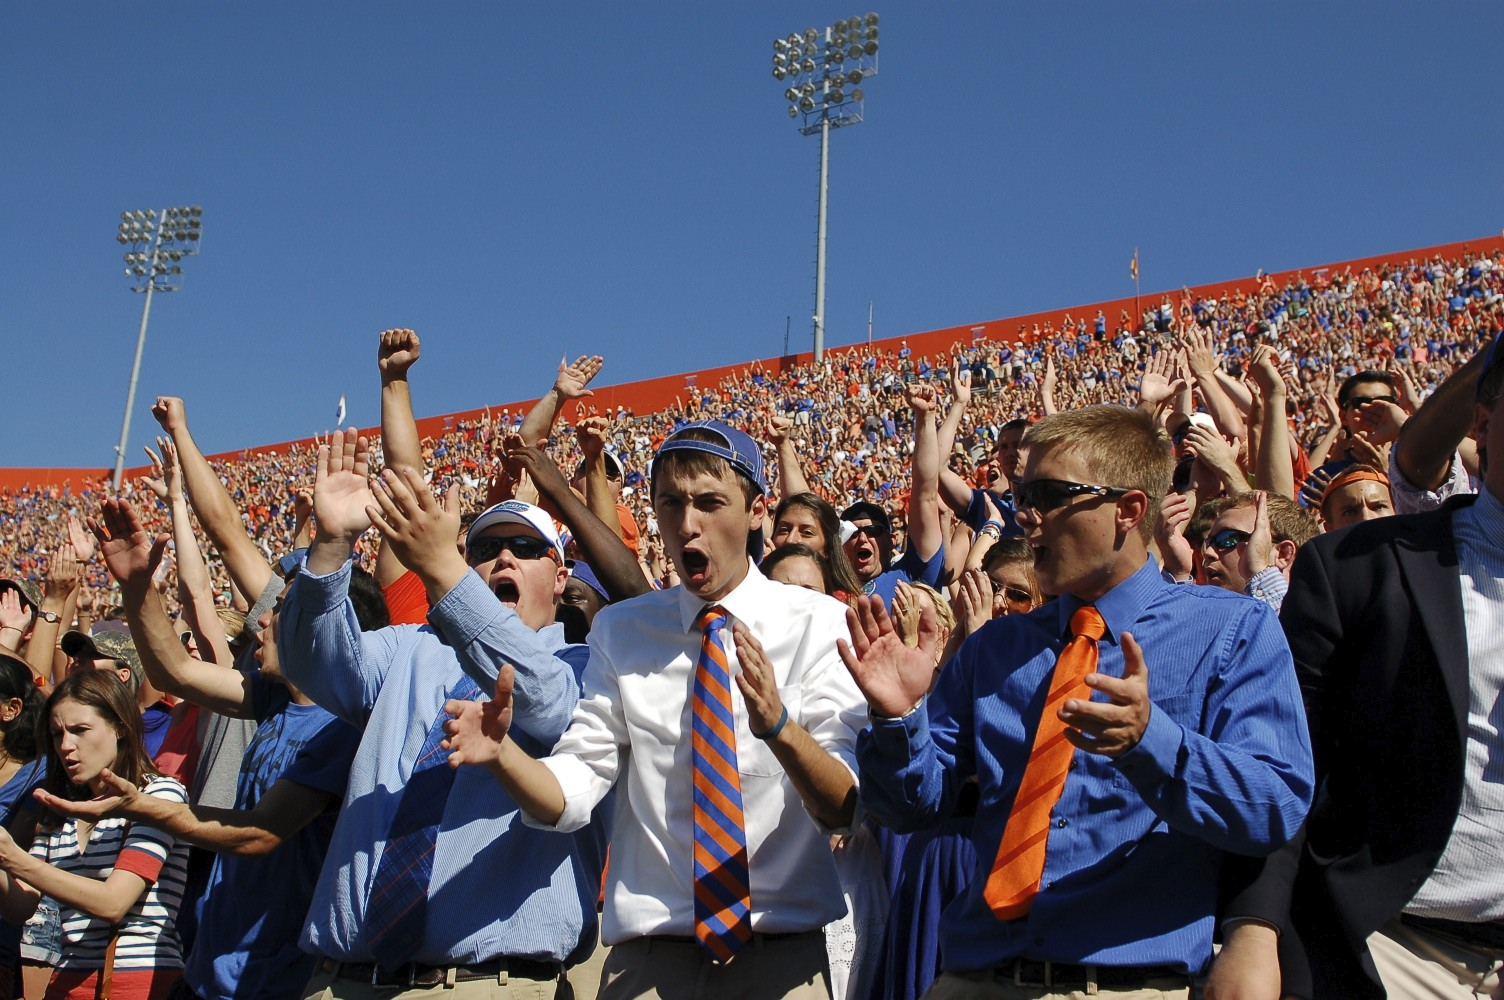 Florida fans cheer as Josh Evans makes an interception during a Missouri third down in range for a possible touchdown. Evans interception sealed the victory for the Gators Saturday afternoon.